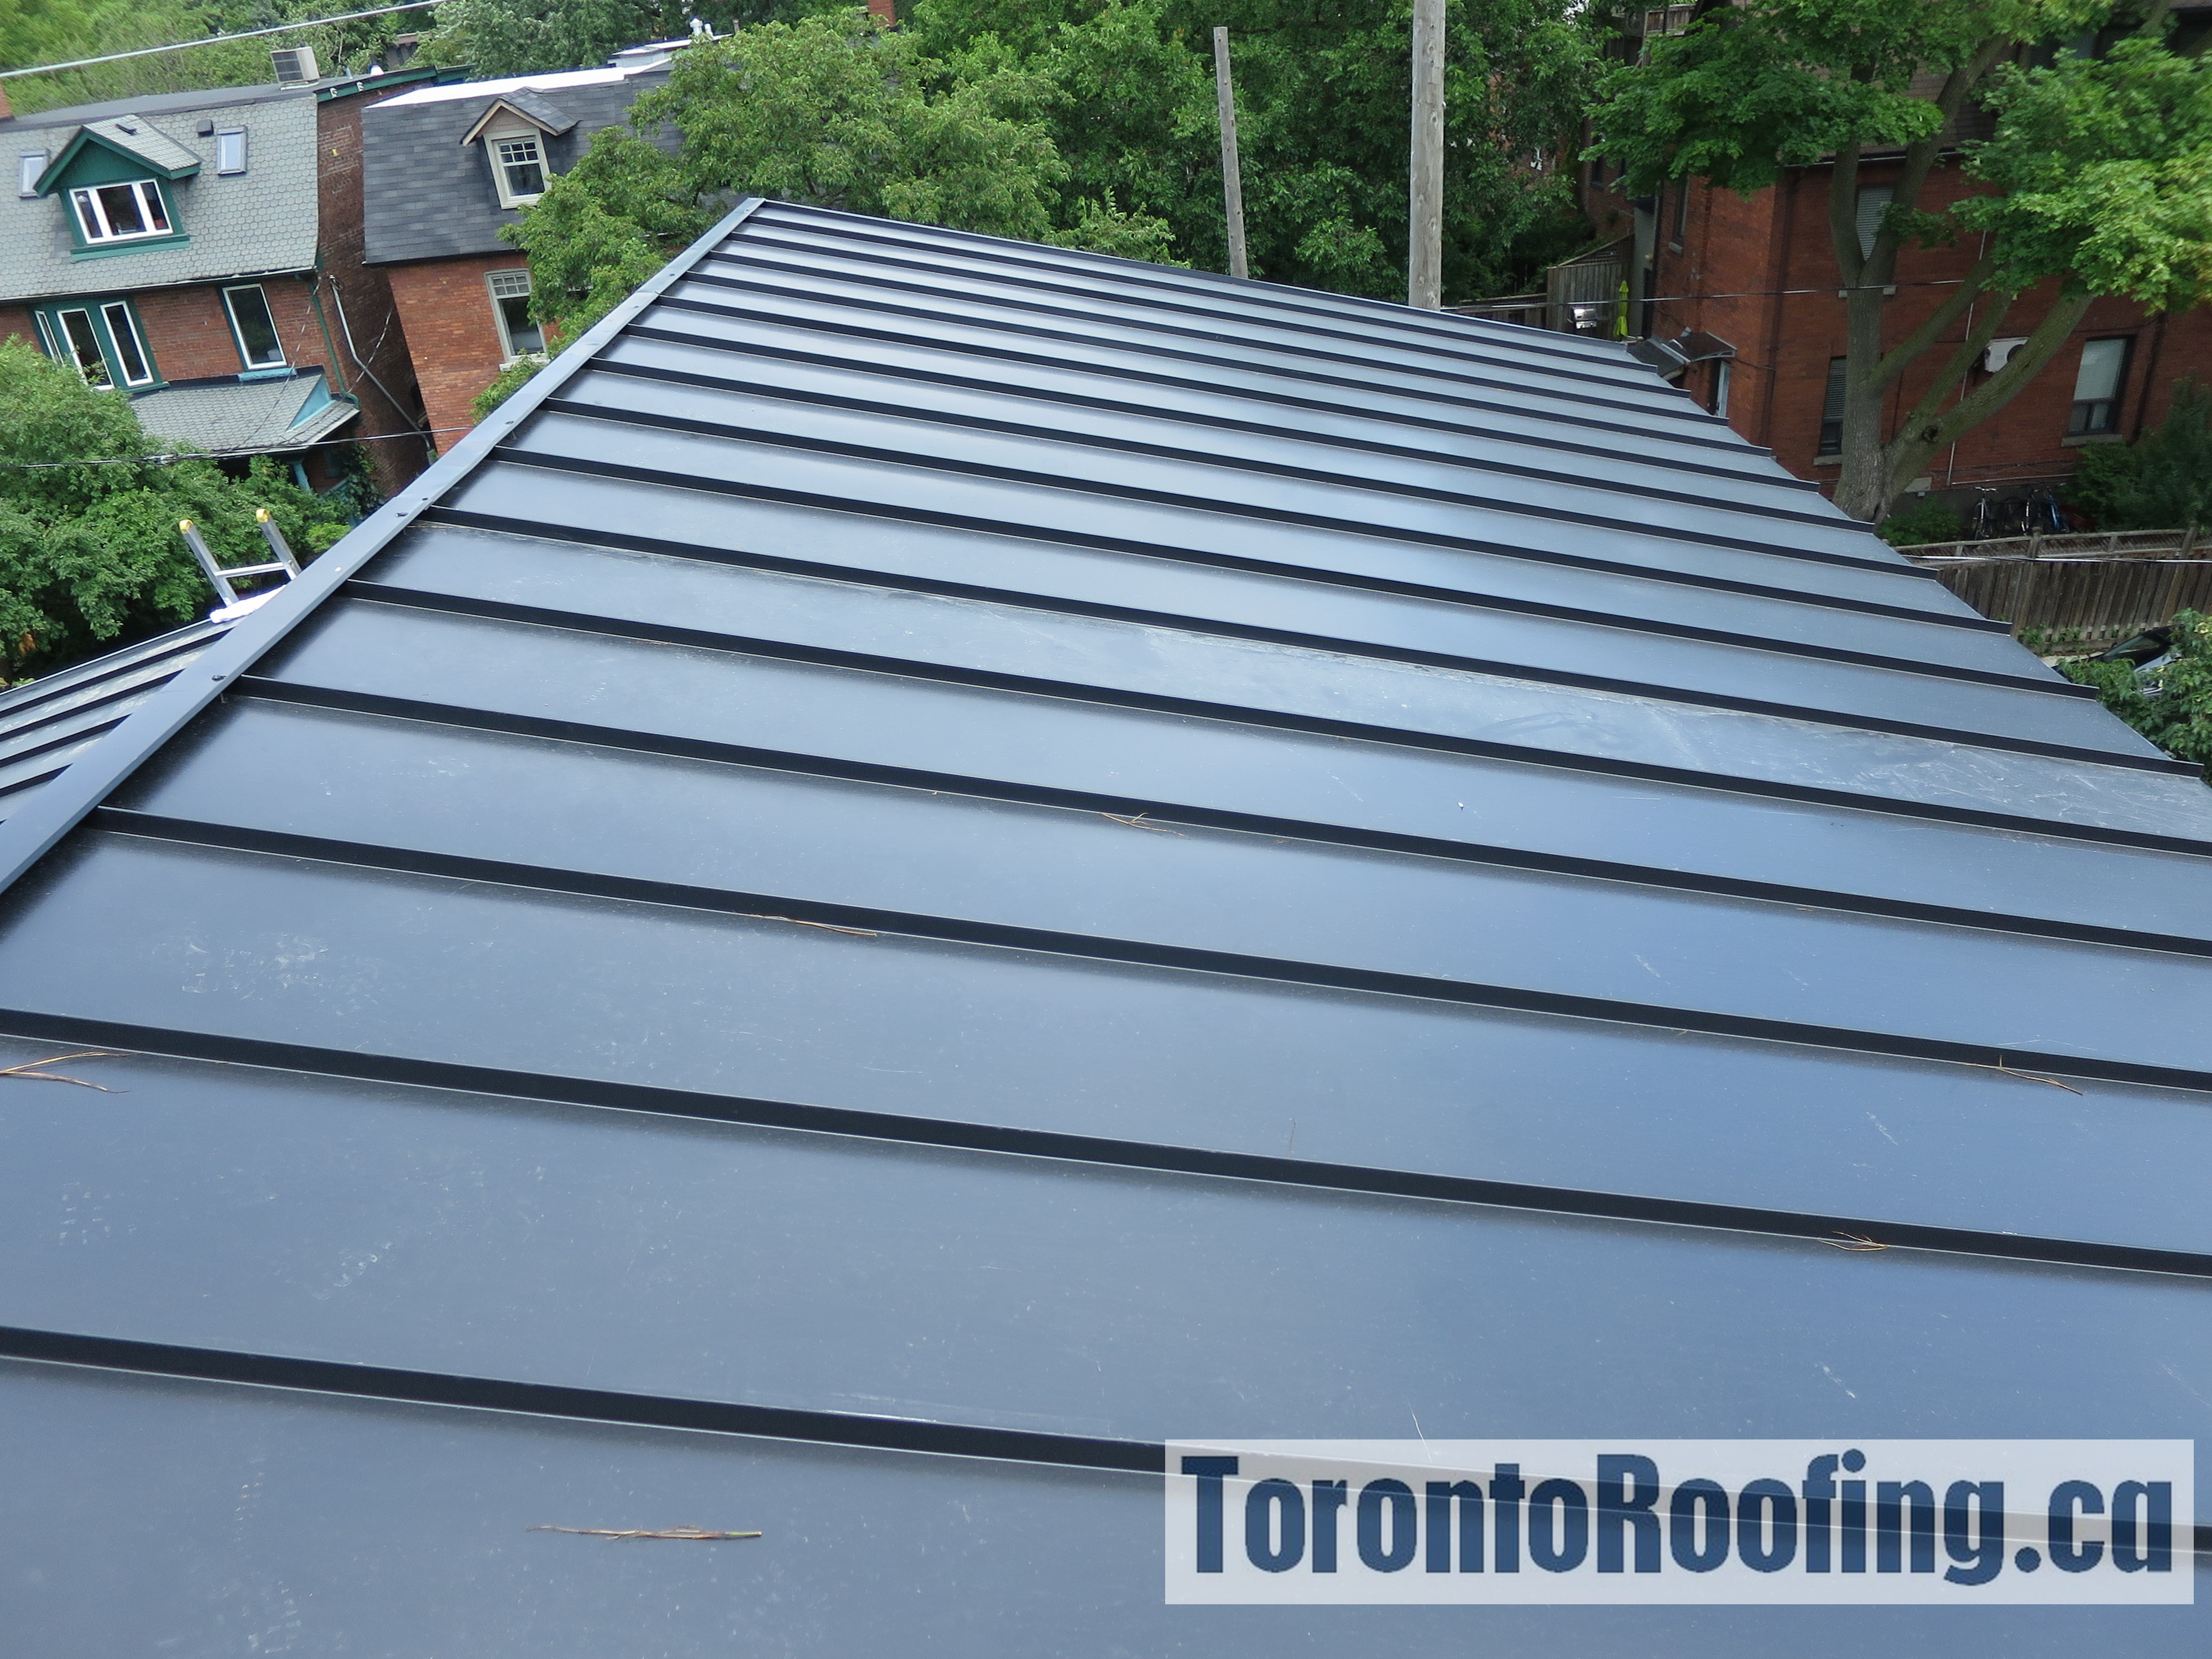 toronto-roofing-standing-seam-metal-roof-roofing-toronto-metal-roofing-roofing-contractor-6